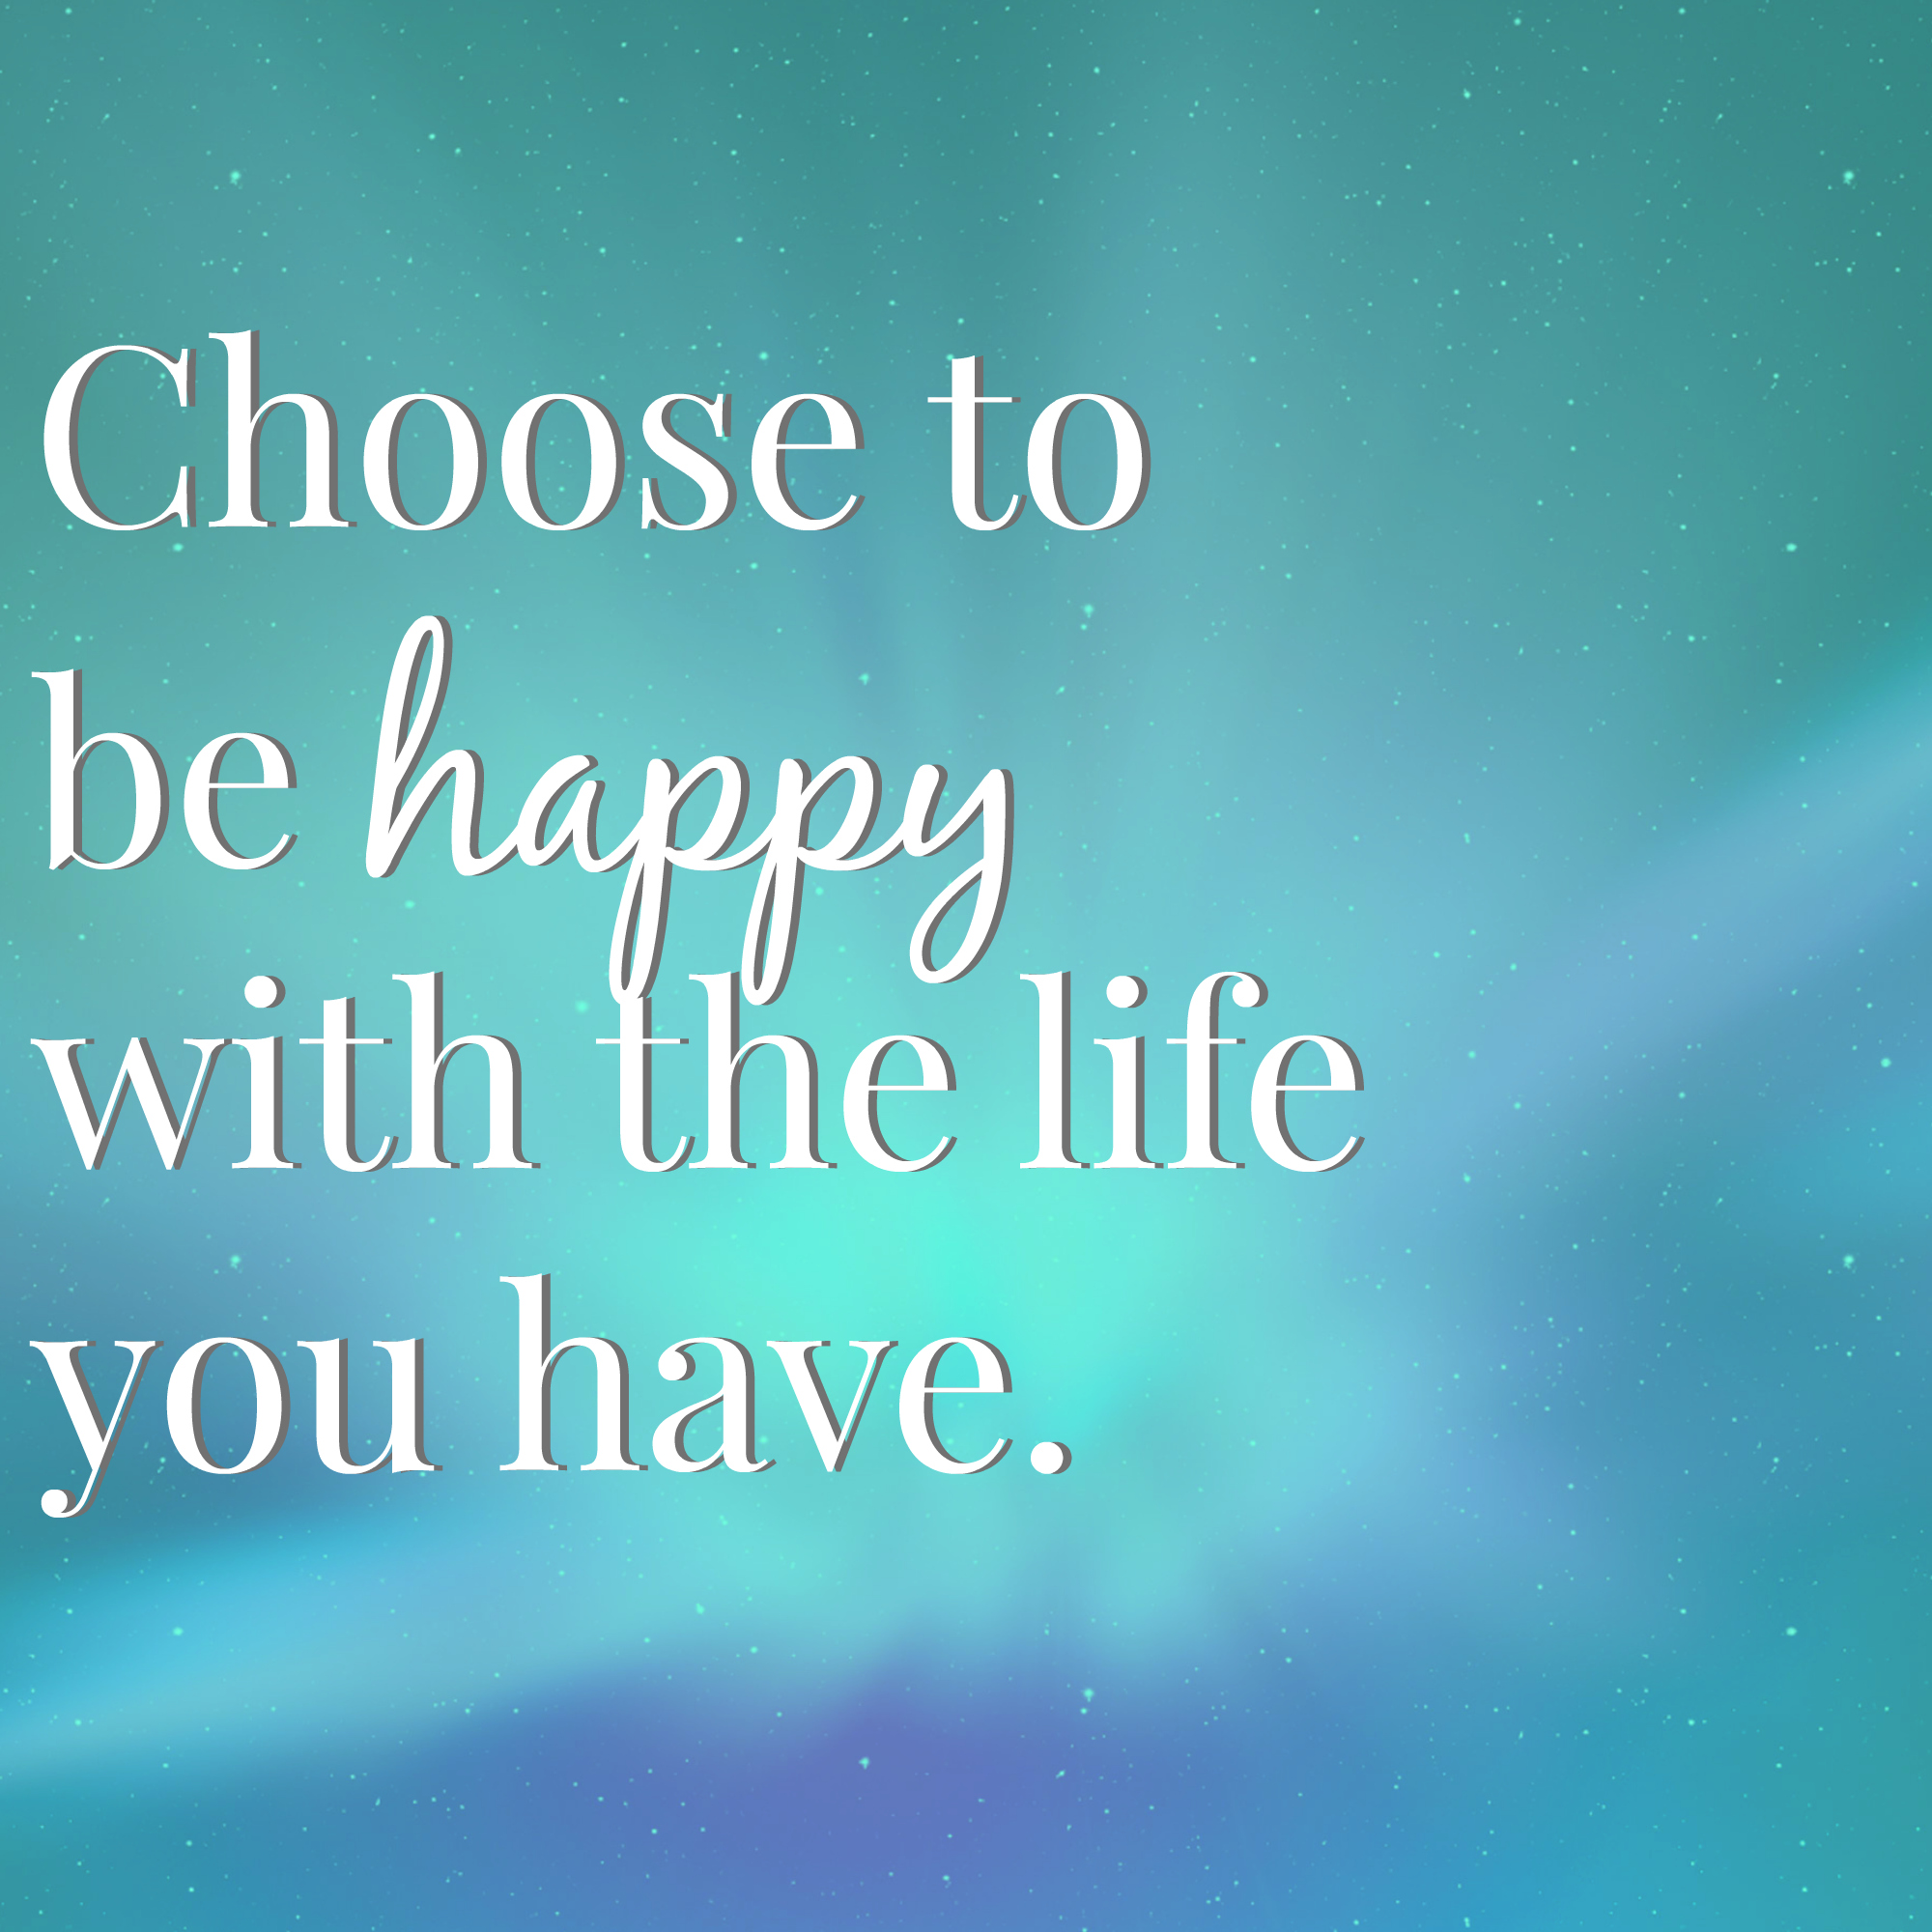 How to Choose Happiness Every Day